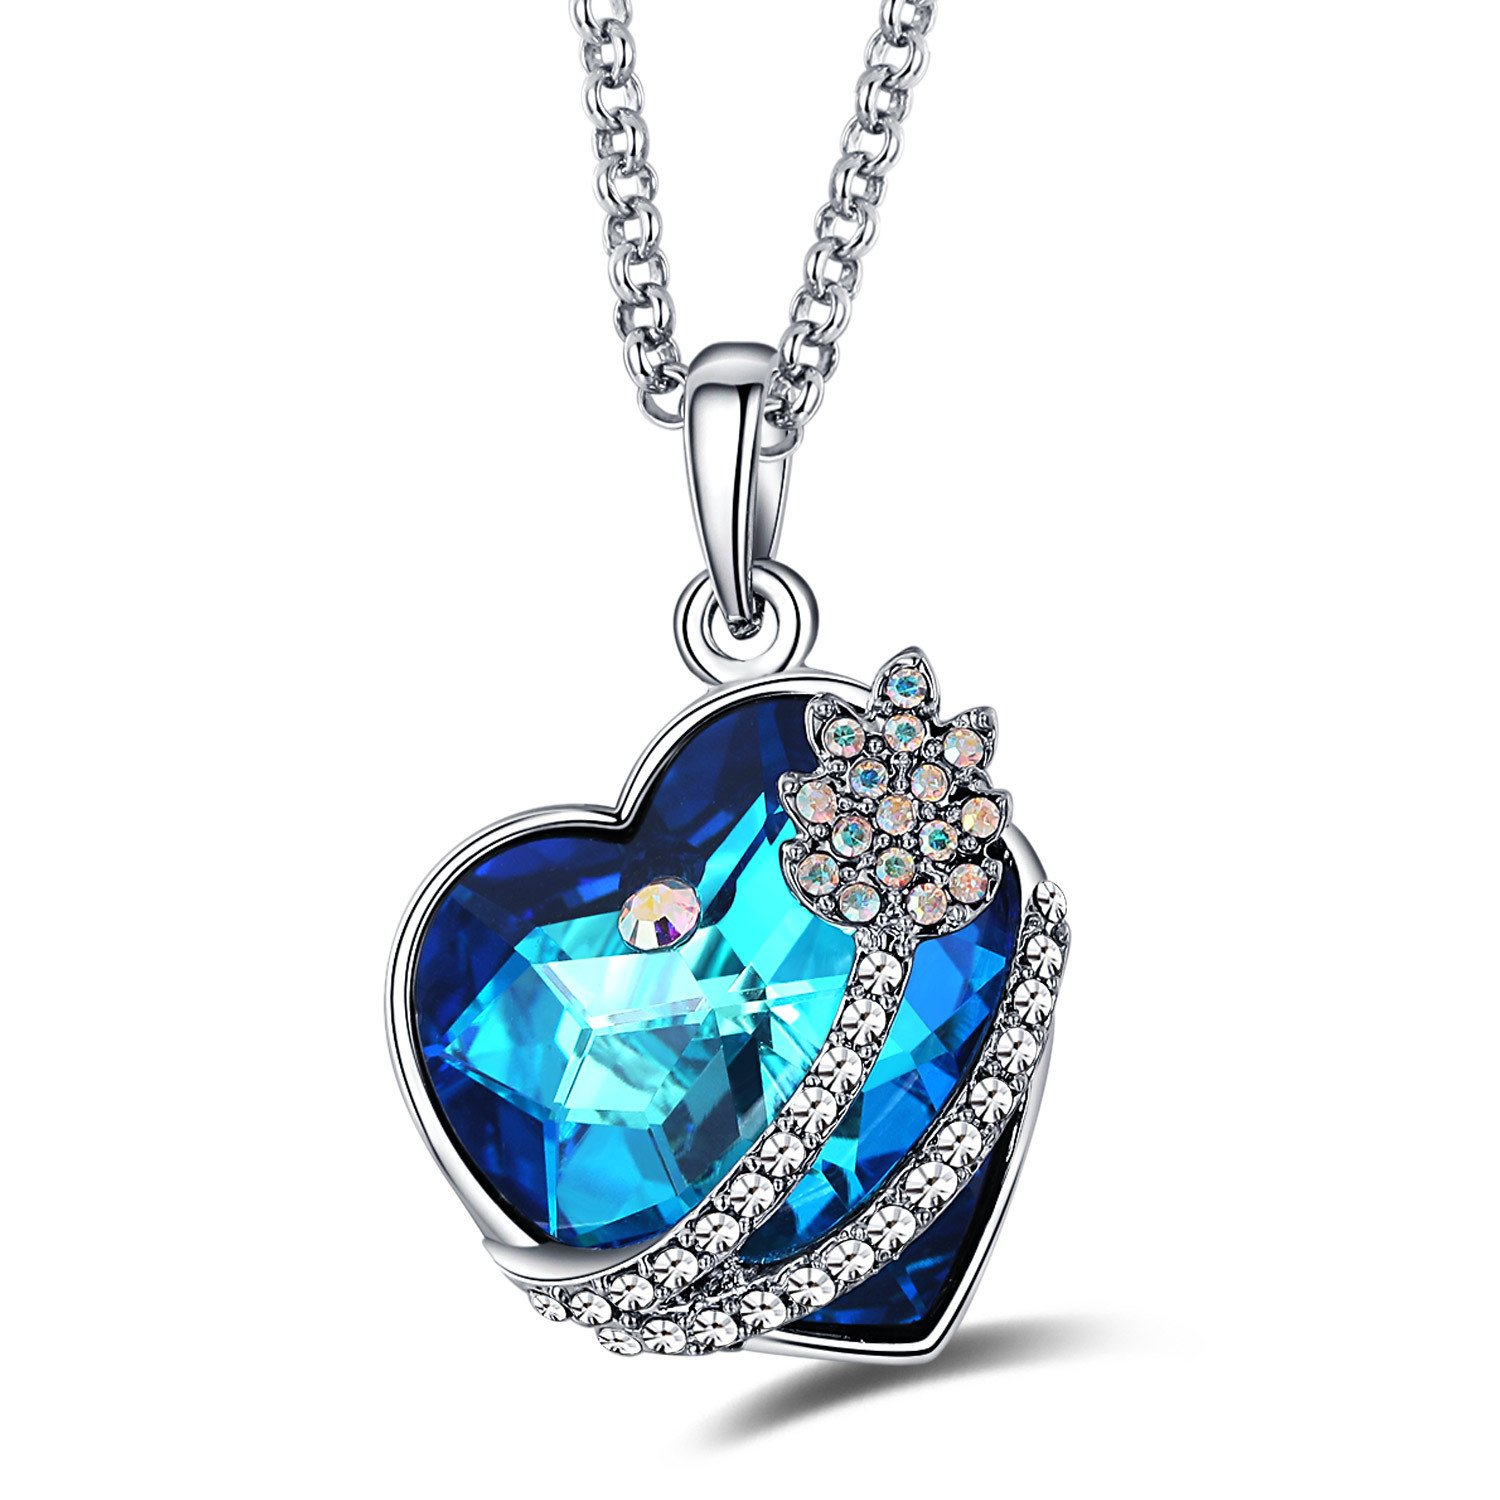 fashion shape jewelry necklace wings cz pendant day heart valentine pave s kivn angel products womens guardian micro valentines embellished